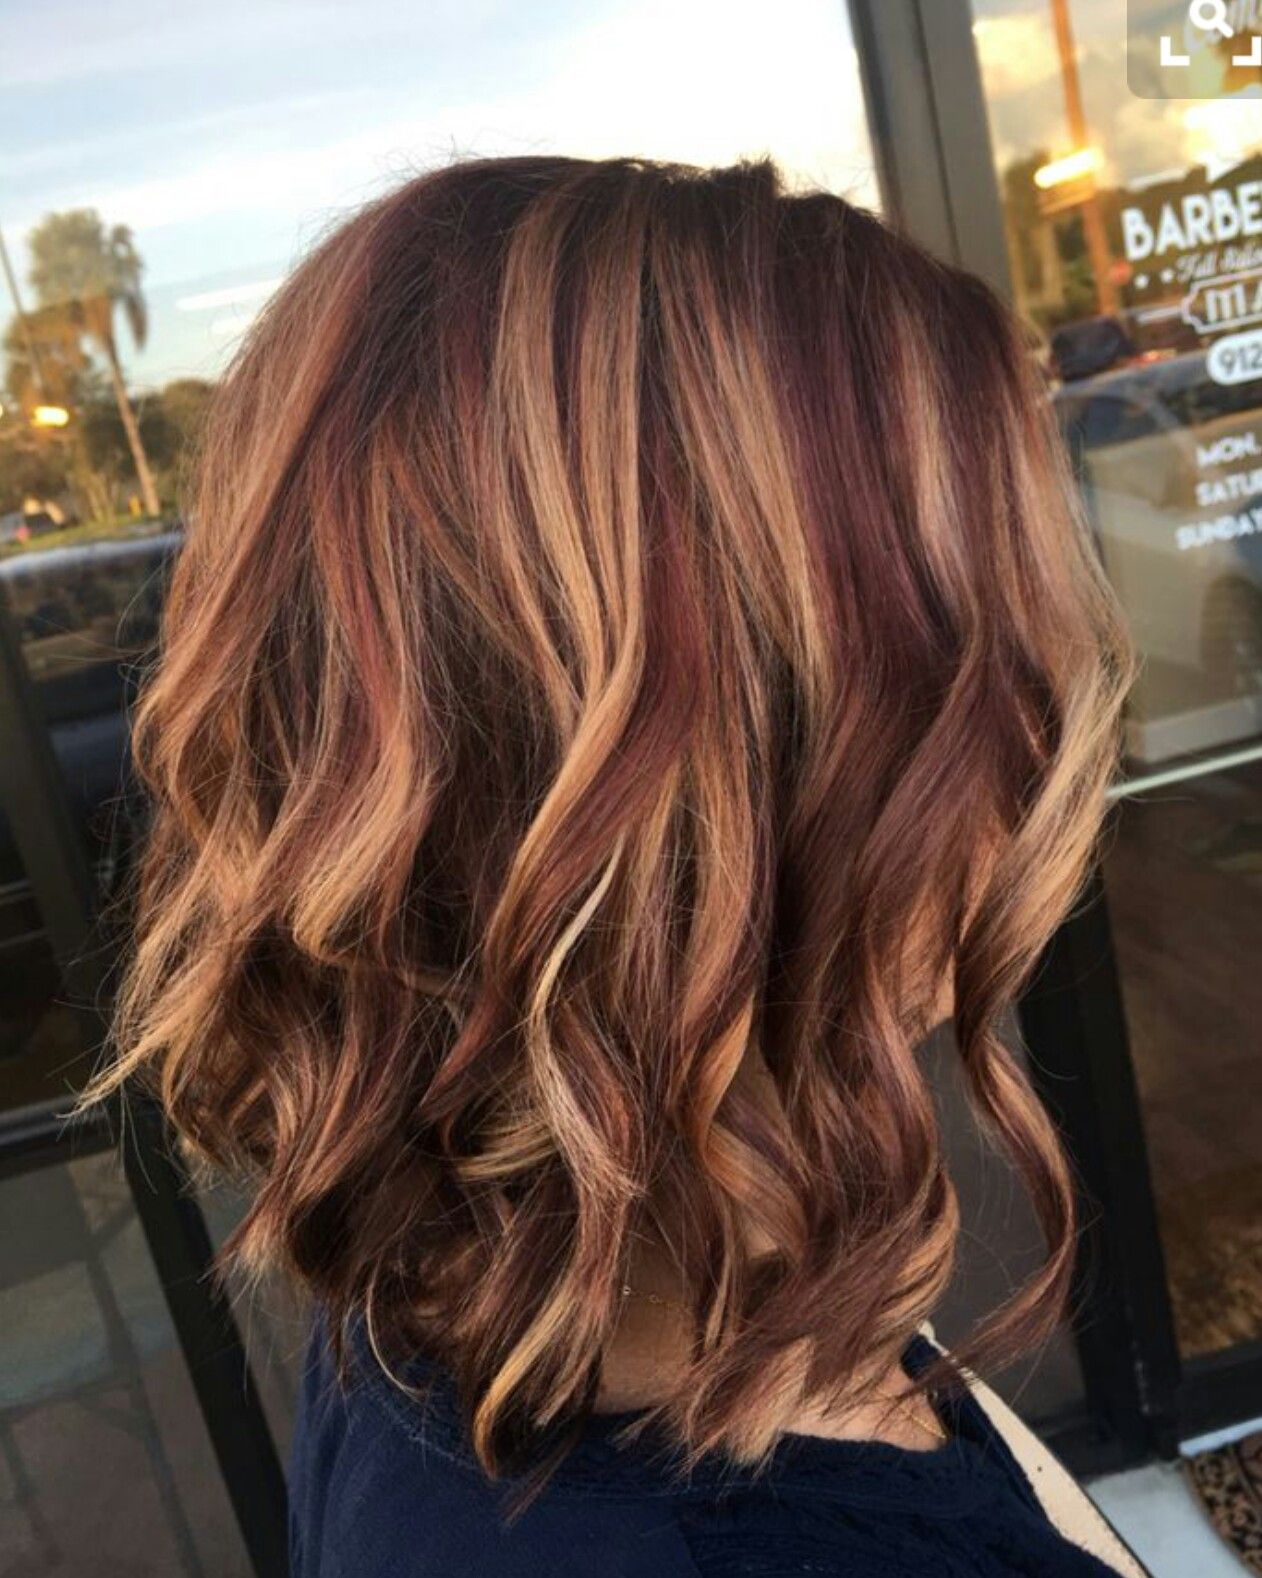 Fall blonde hair styles pinterest fall blonde blondes and